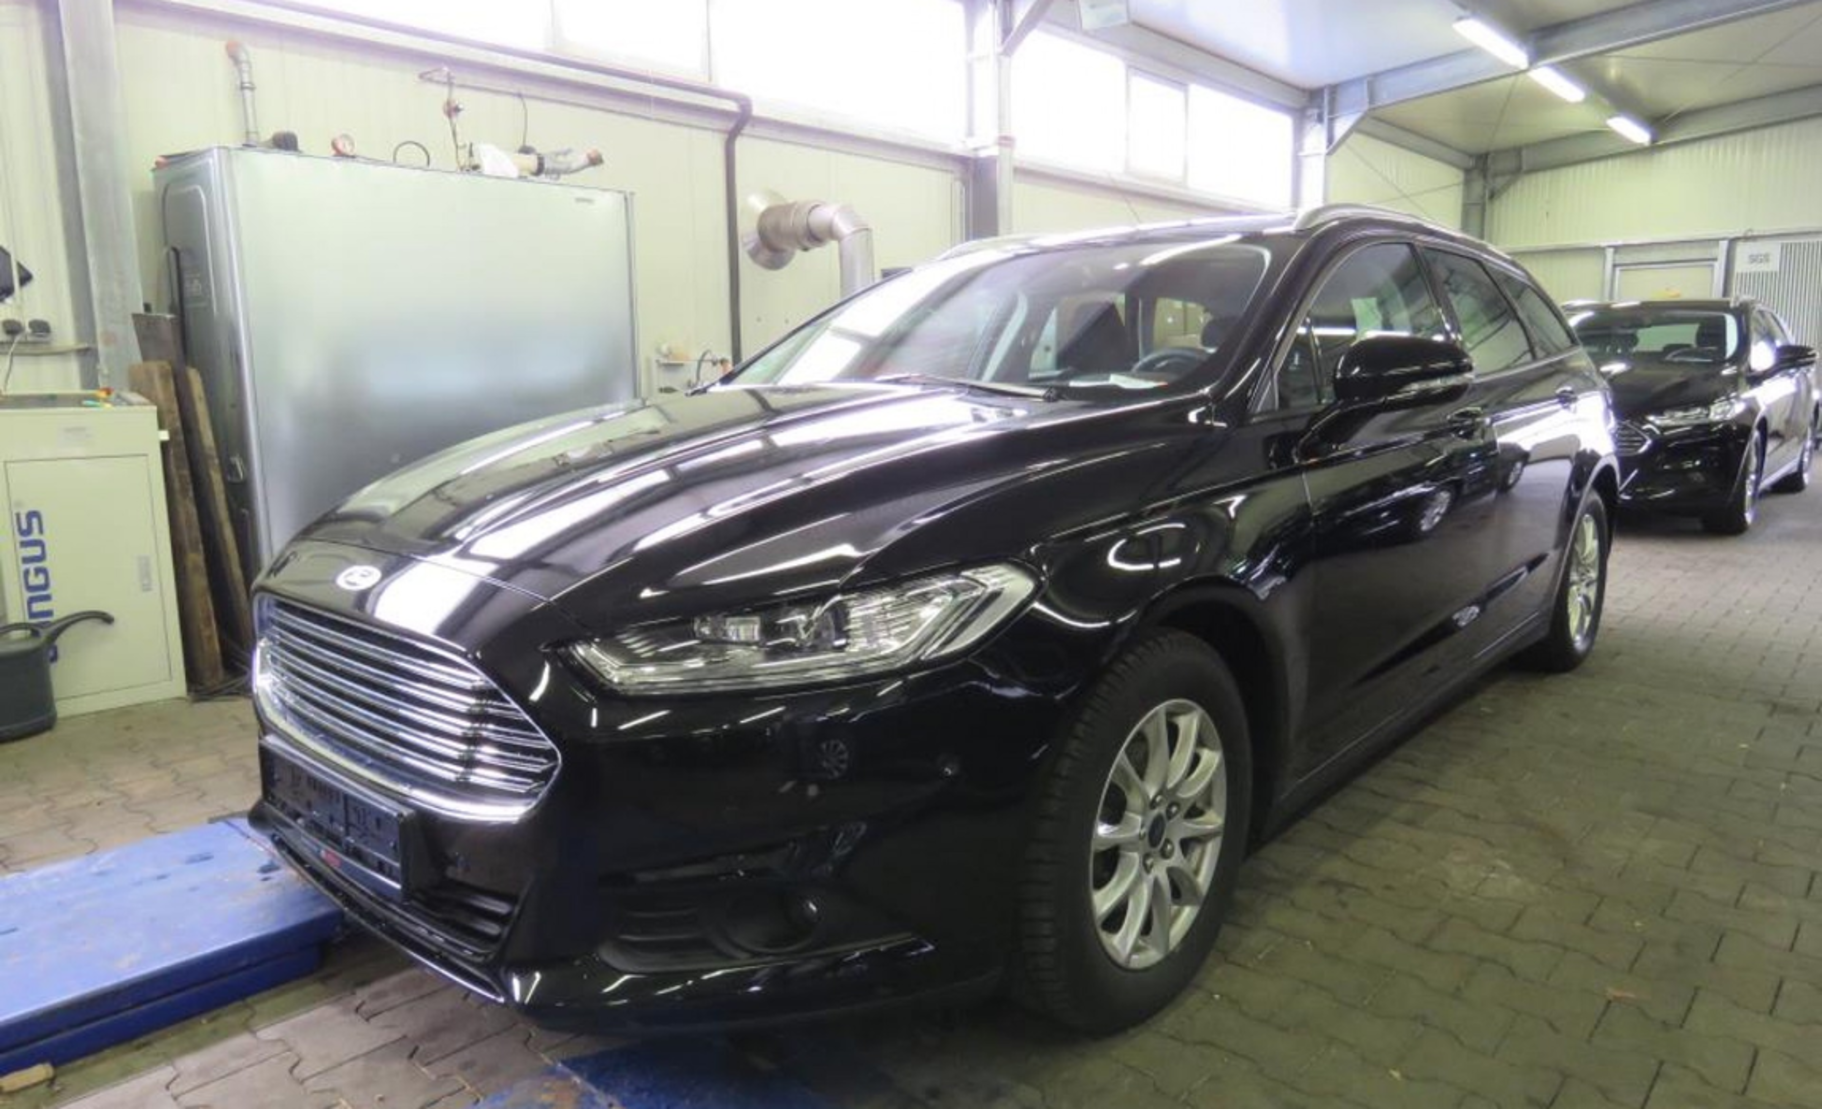 Ford Mondeo Turnier 2.0 TDCi Start-Stop Aut. Business Edition (689005) detail1